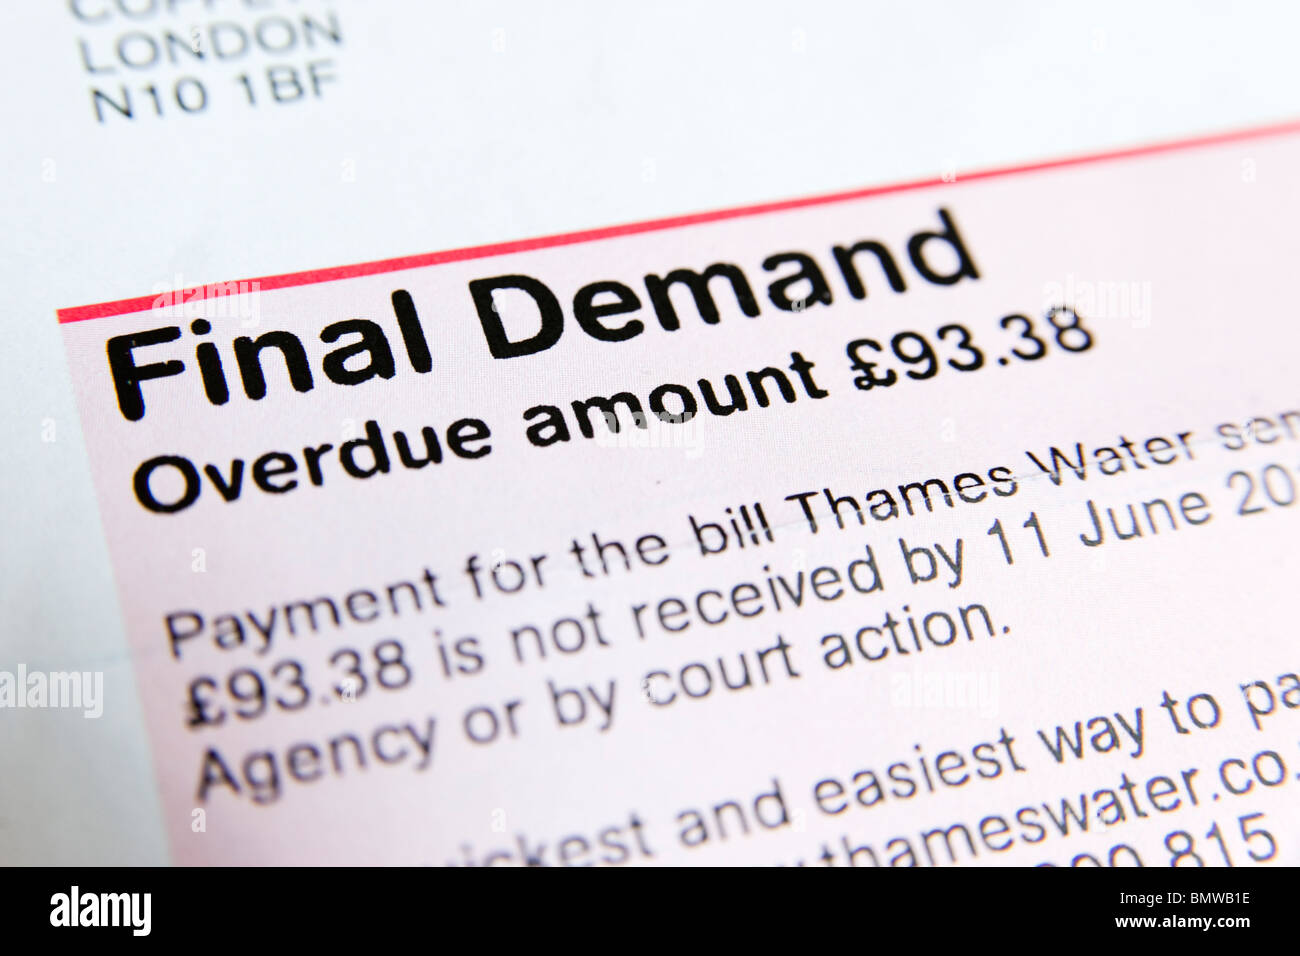 Final Demand for overdue Thames Water bill, England, UK - Stock Image